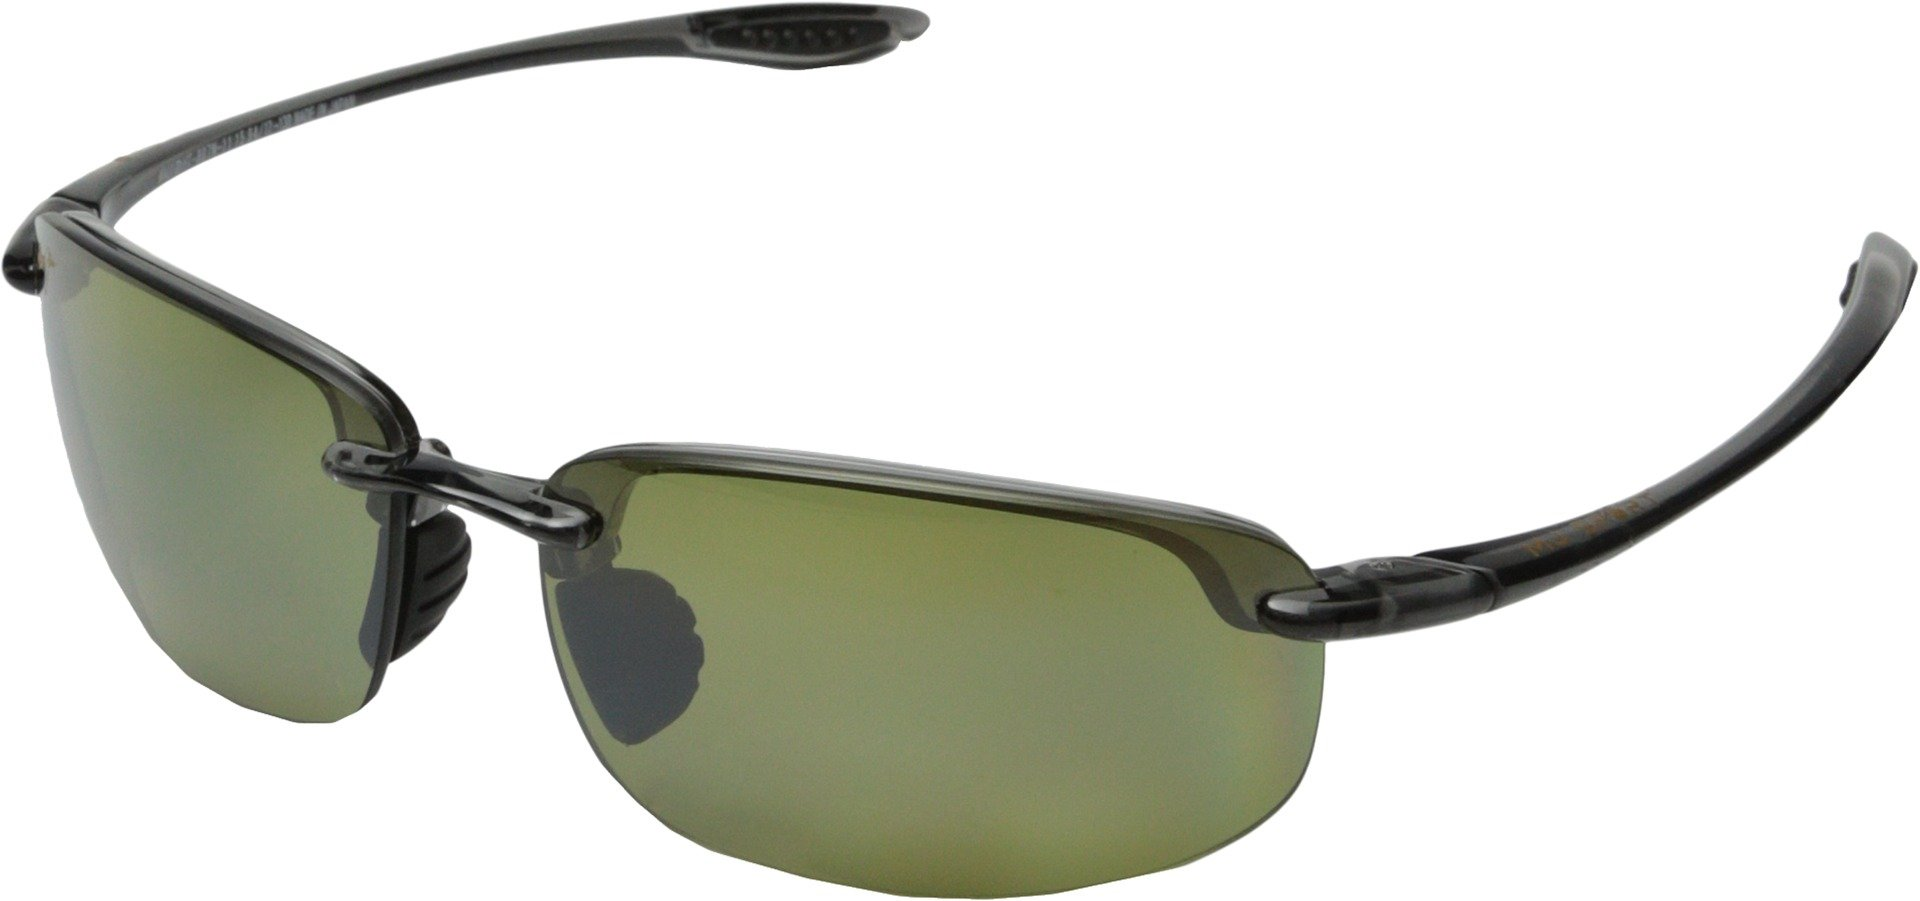 Maui Jim Unisex Hookipa Reader Universal Fit 1.50 Smoke Grey/Maui Ht One Size